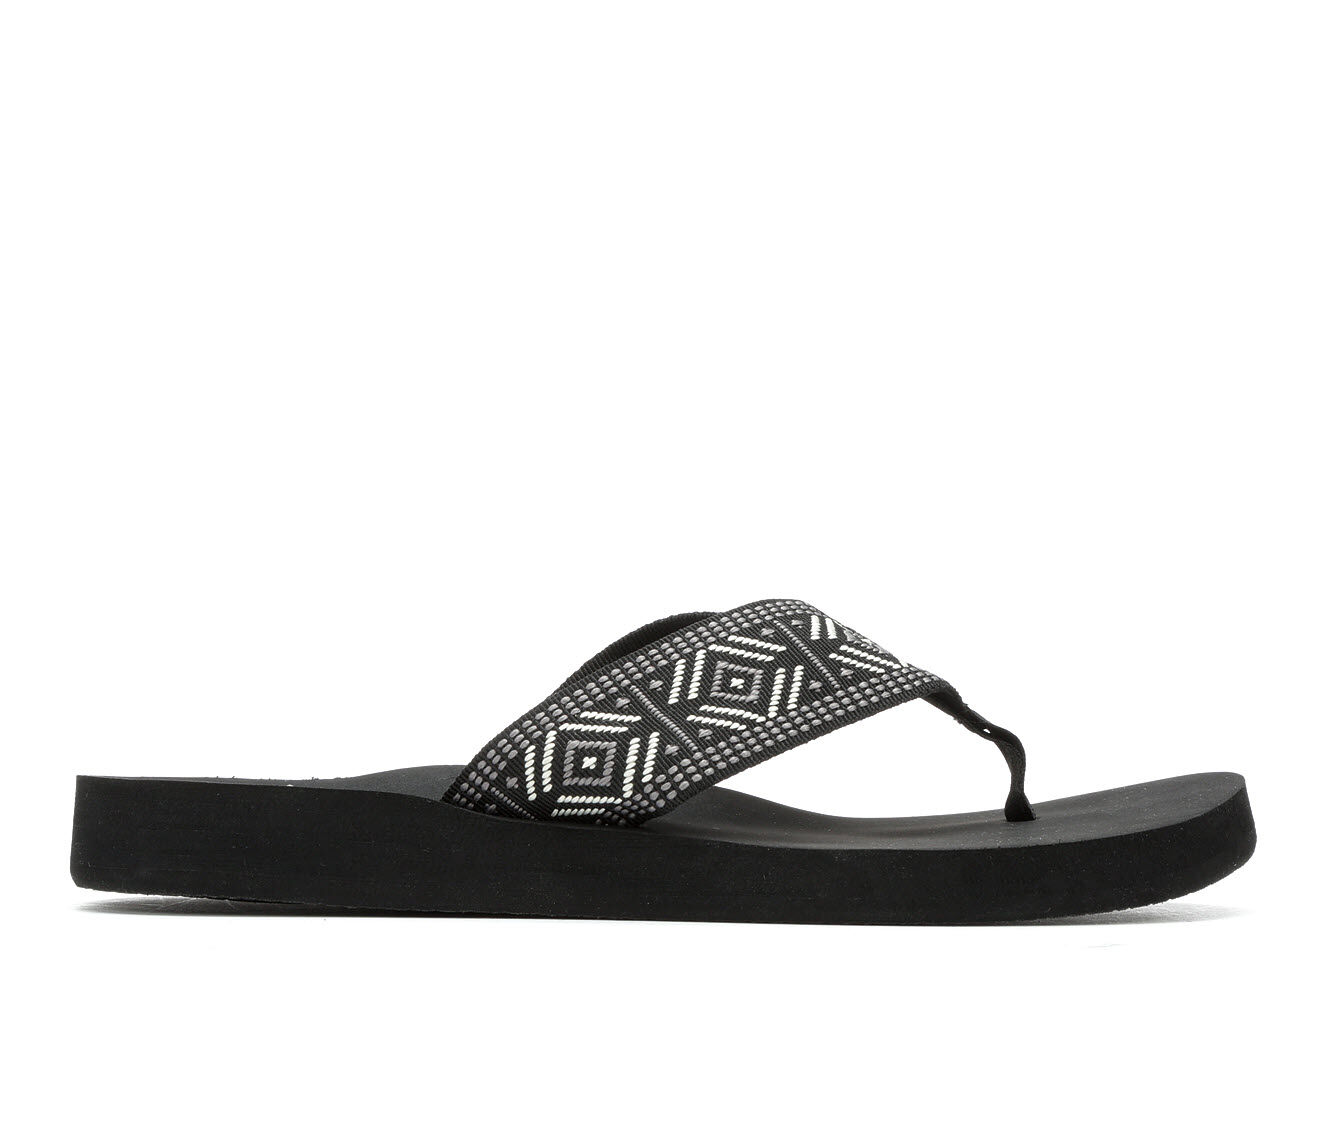 Women's Reef Reef Spring Woven Sandals Black/White